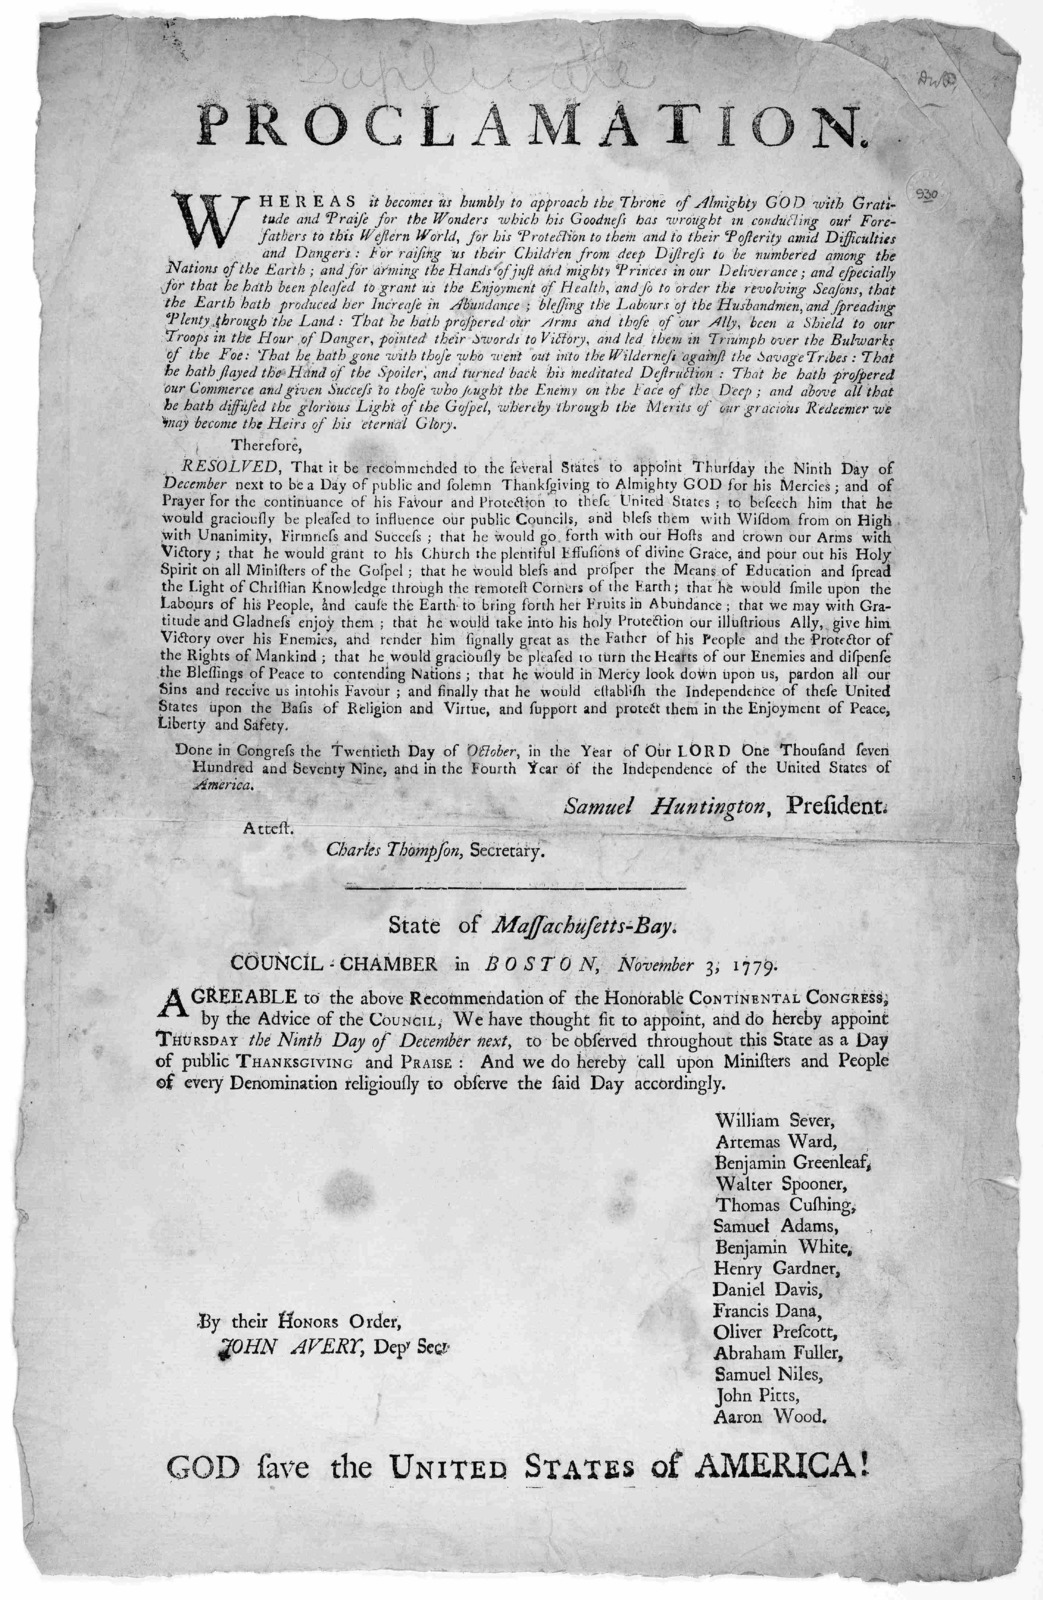 A proclamation Whereas it becomes us humbly to approach the throne of Almighty God with gratitude and praise for the wonders which his goodness has wrought in conducting our forefathers to this western world ... [Boston: Printed by Benjamin Edes